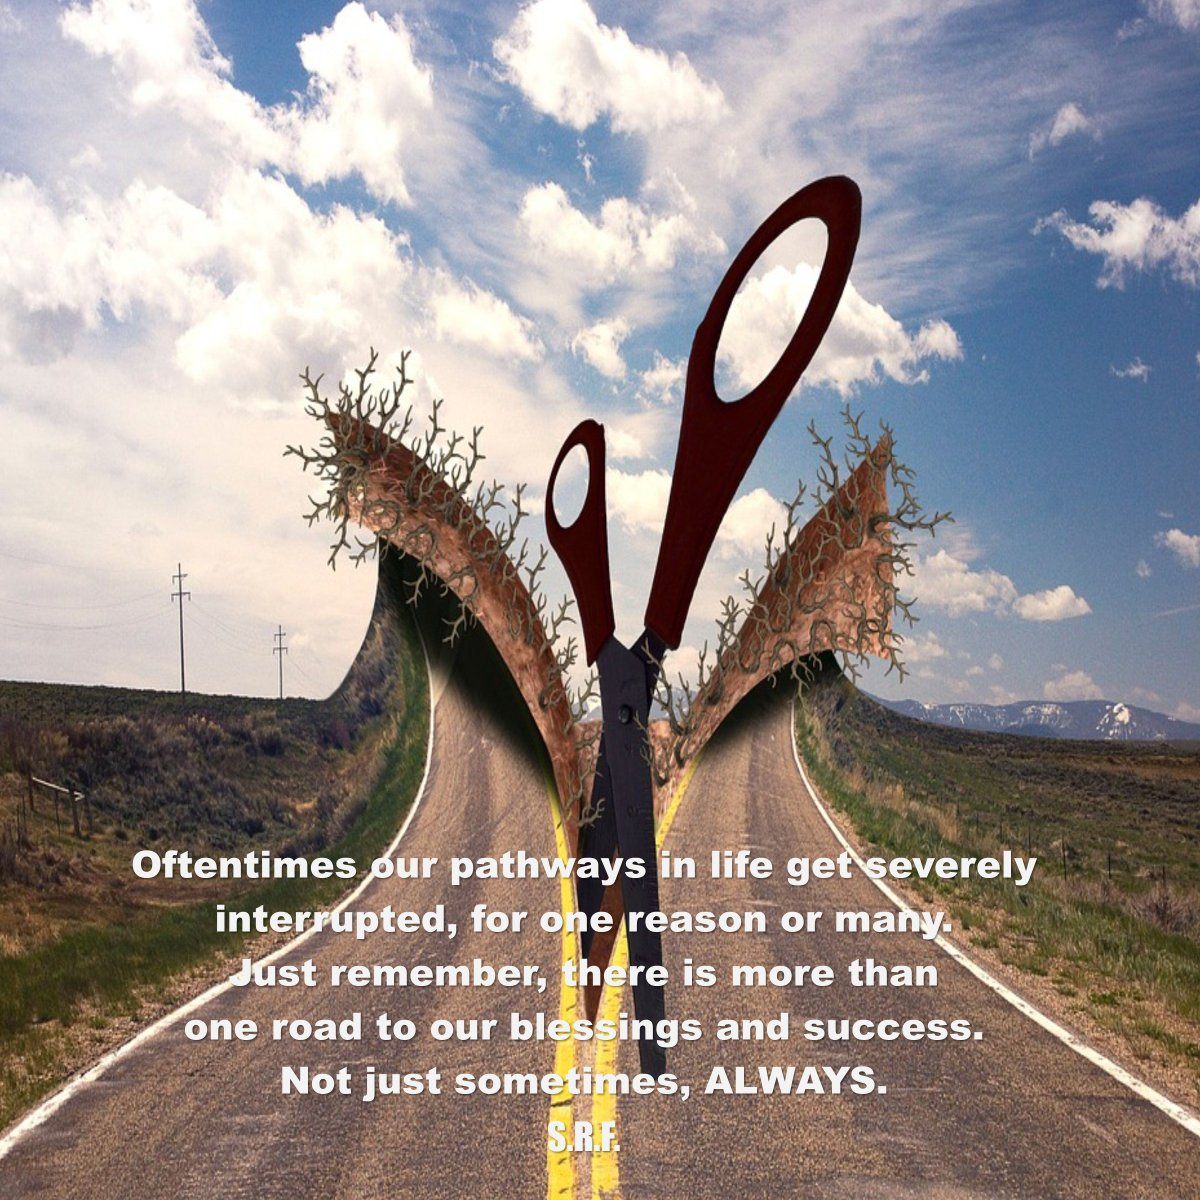 So, you thought that was the only way? ~ S.R.F. #letstalkaboutfaith https://faithishowwelive.blogspot.com/2019/02/there-is-more-than-one-way.html…